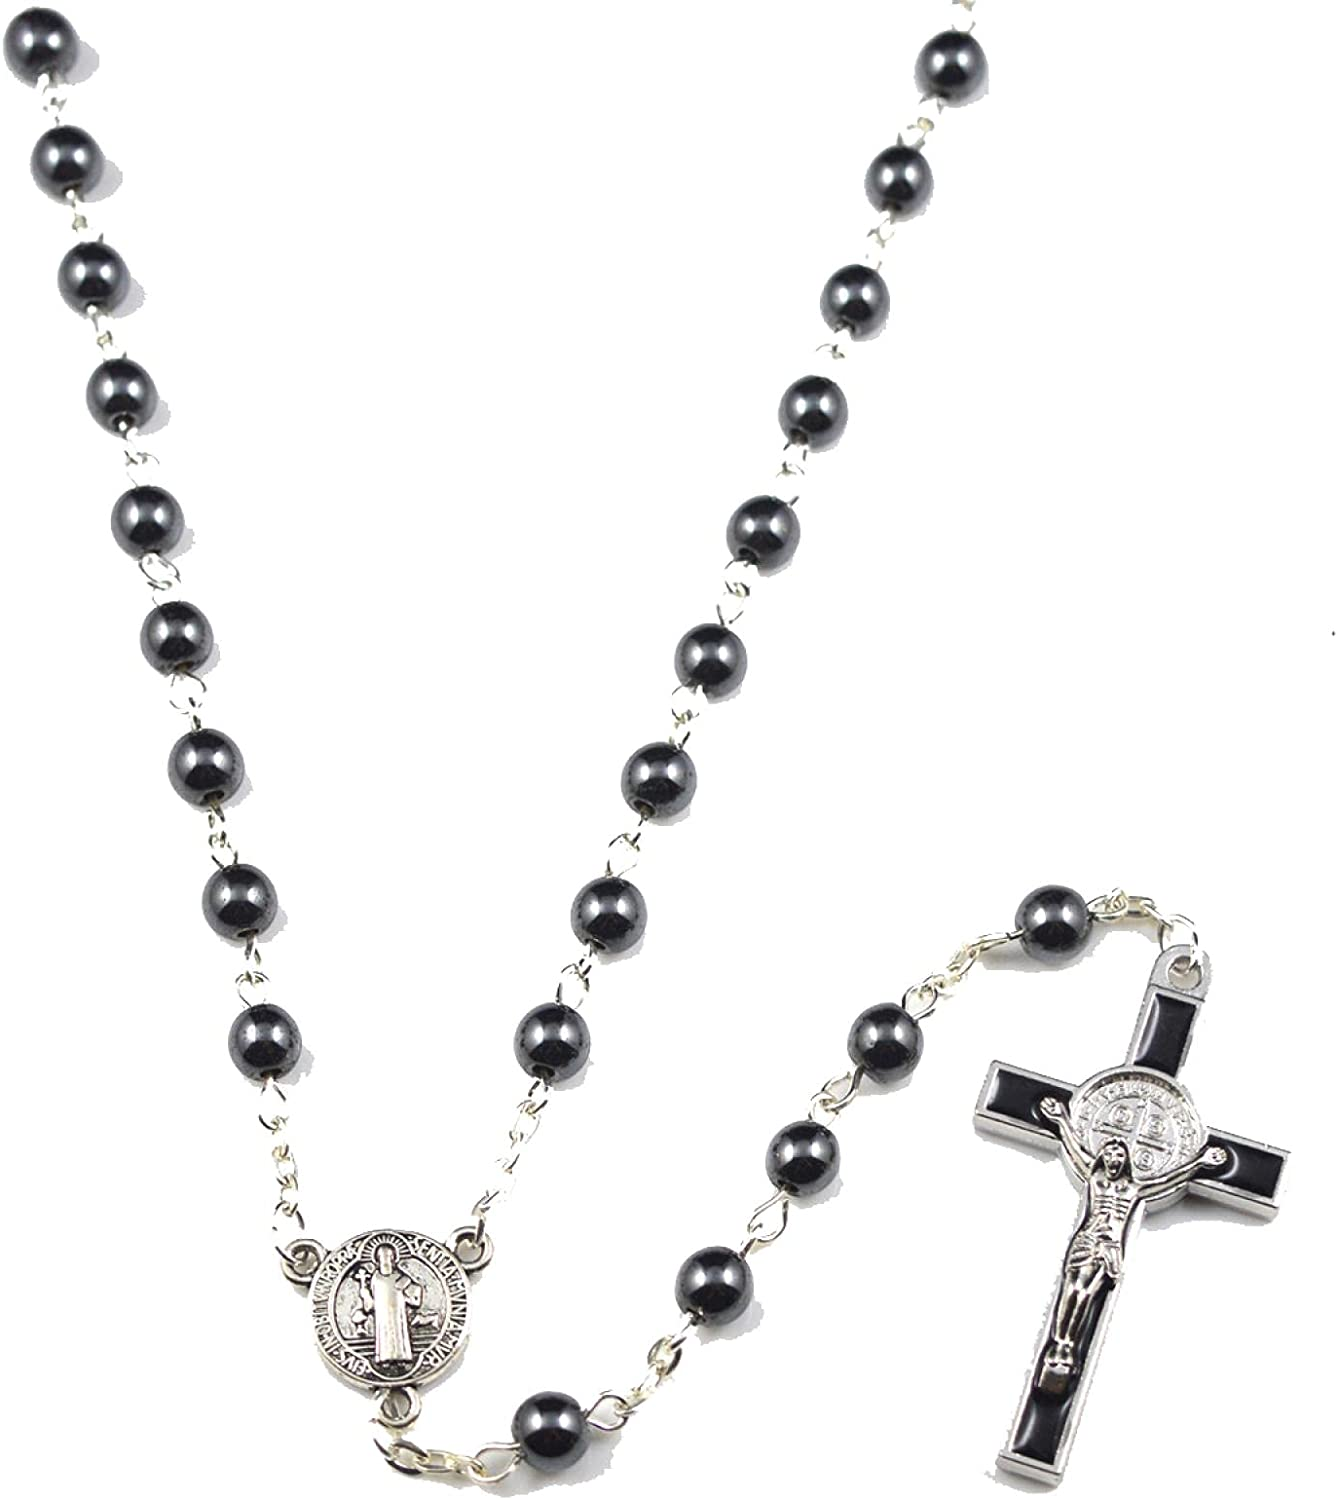 Black Natural Hematite Beads Catholic Ornaments Rosary Beaded Necklace With Crposs Pendant Alloy Strand Chain Jewelry